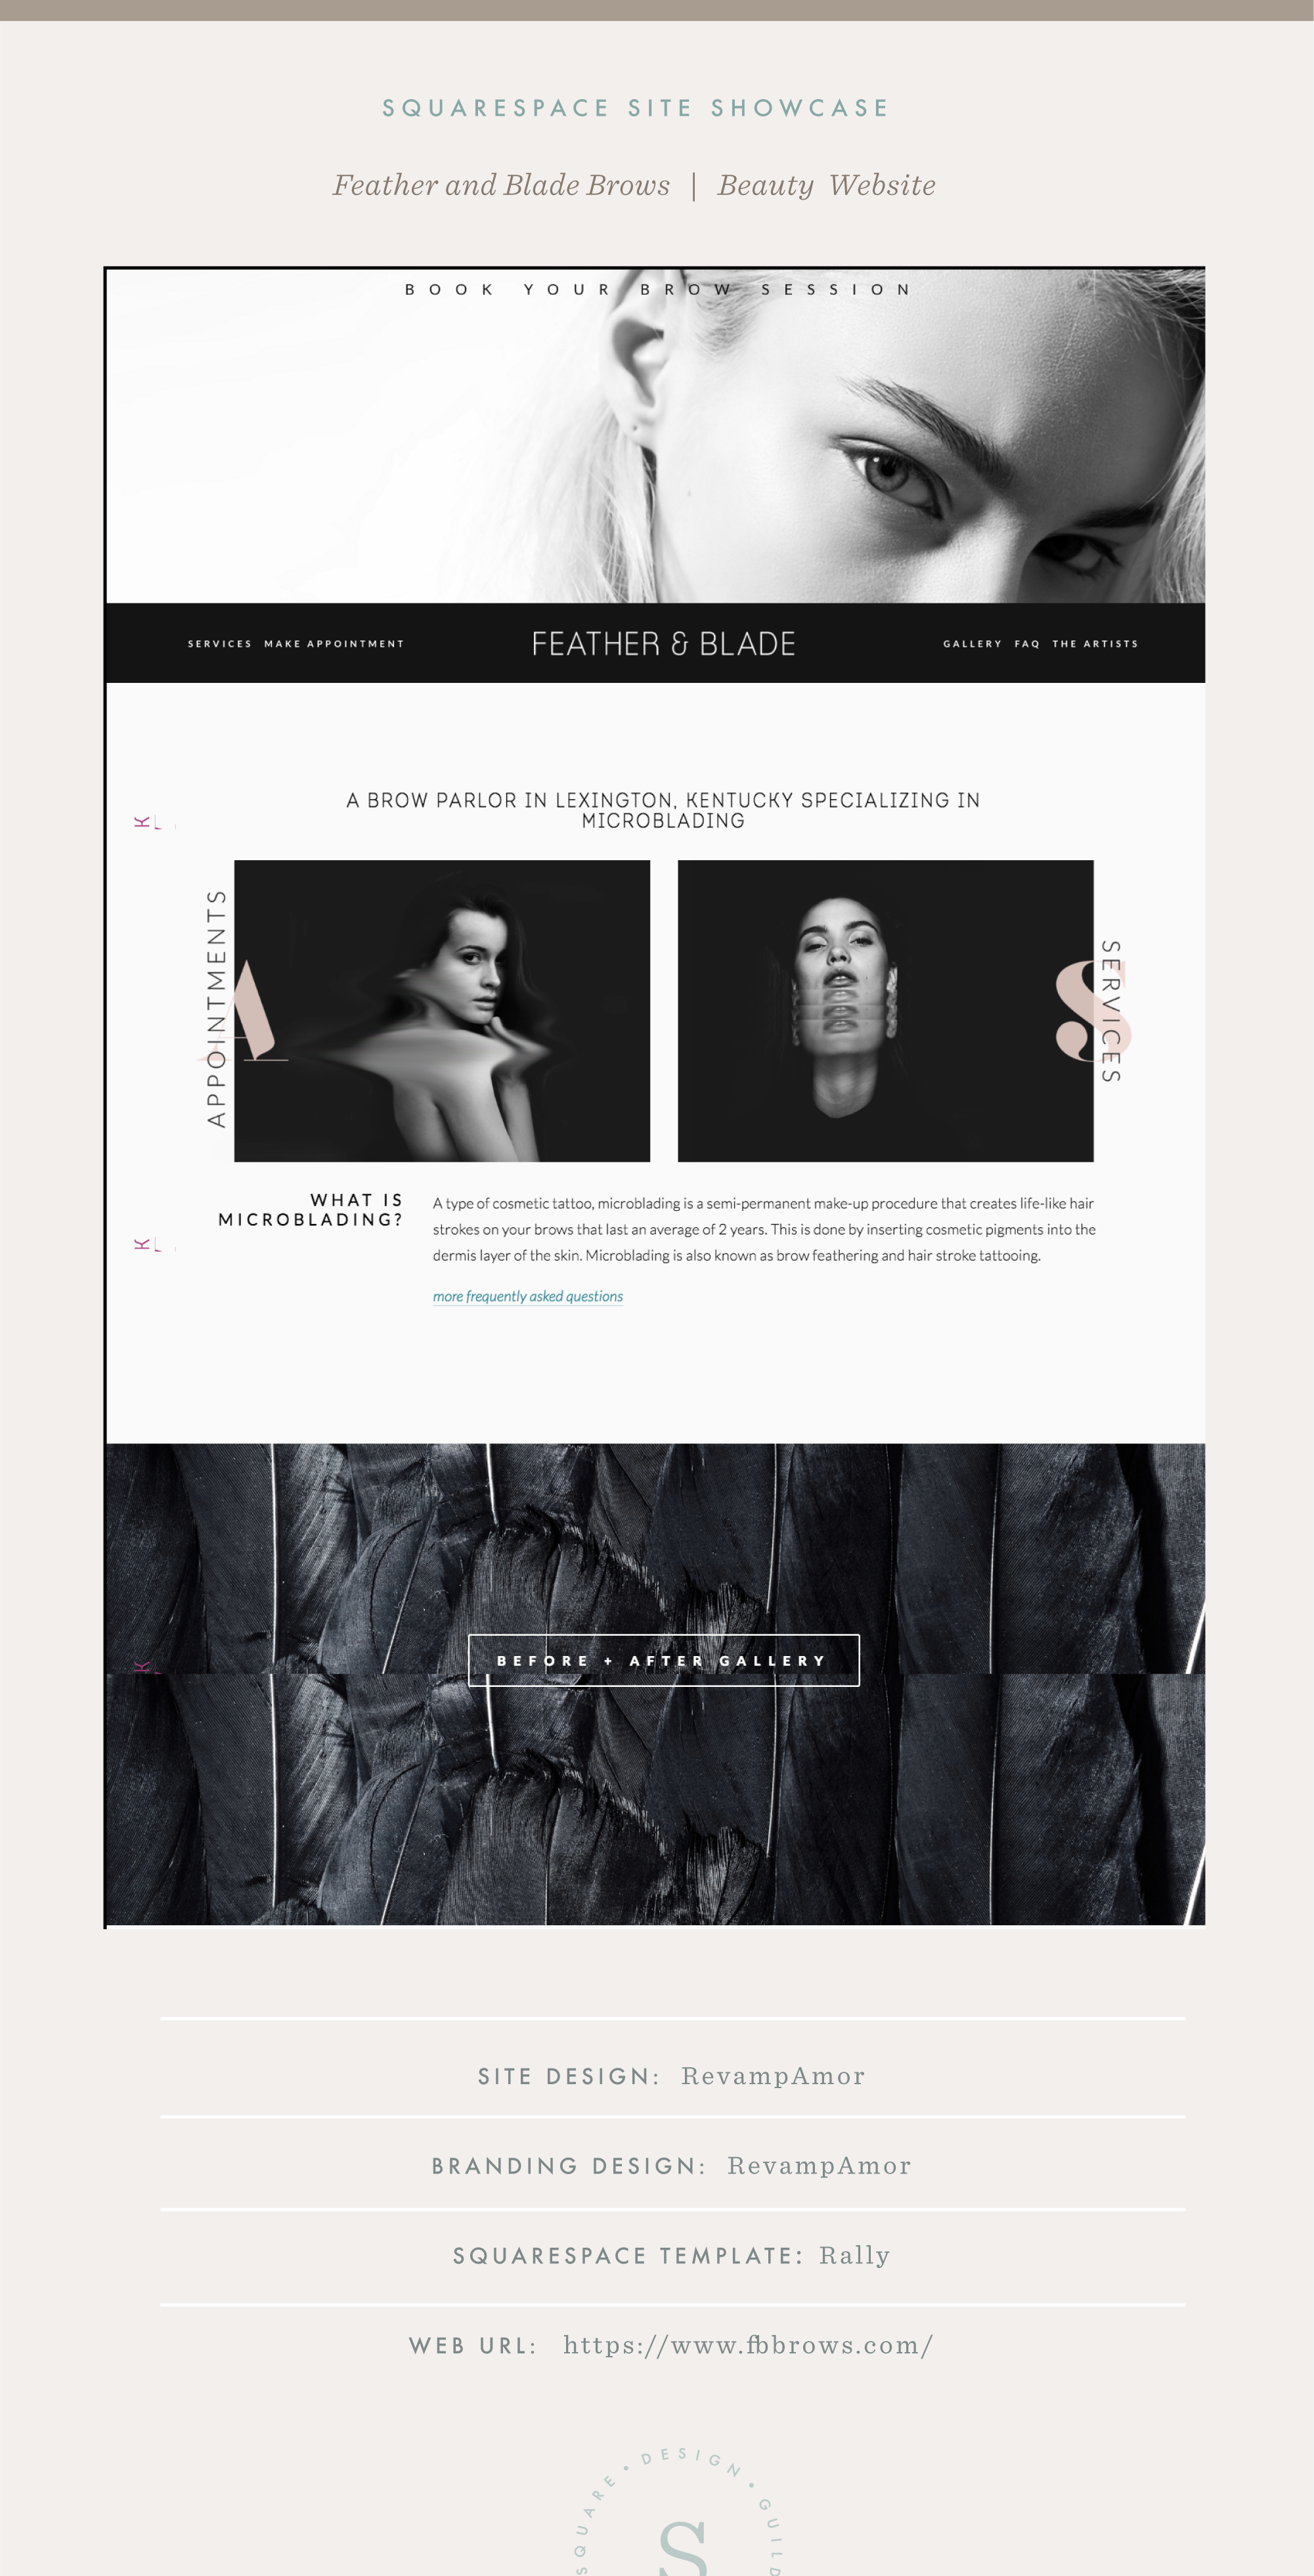 Square Design Guild   Squarespace Site Showcase: Feather and Blade by RevampAmor   Beauty Website